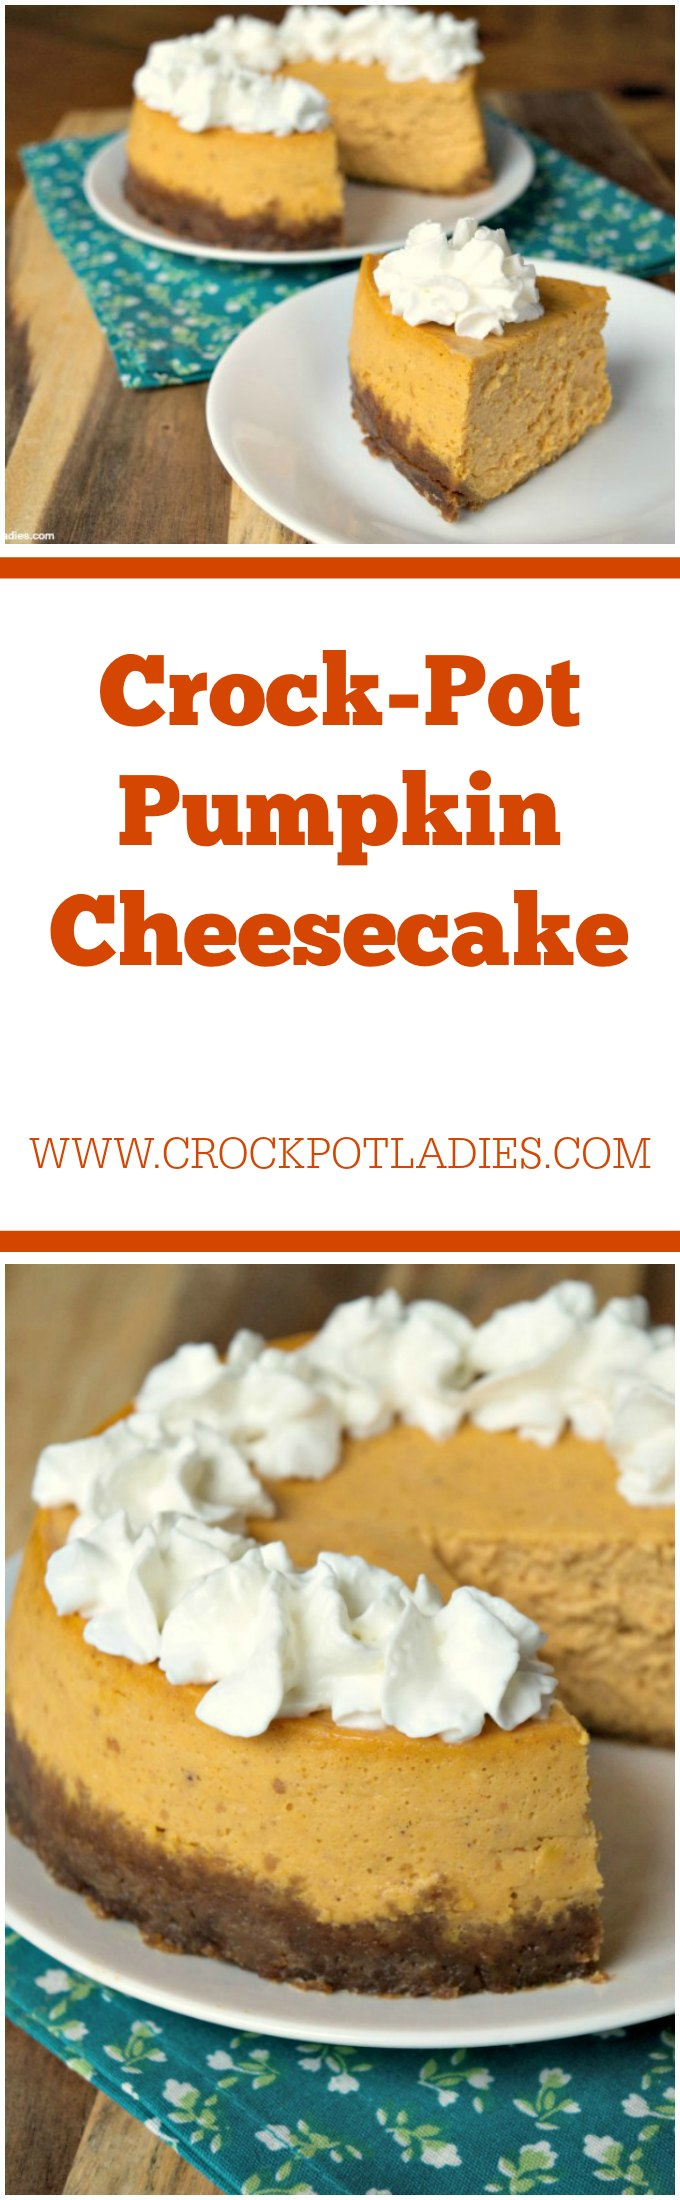 Crock-Pot Pumpkin Cheesecake